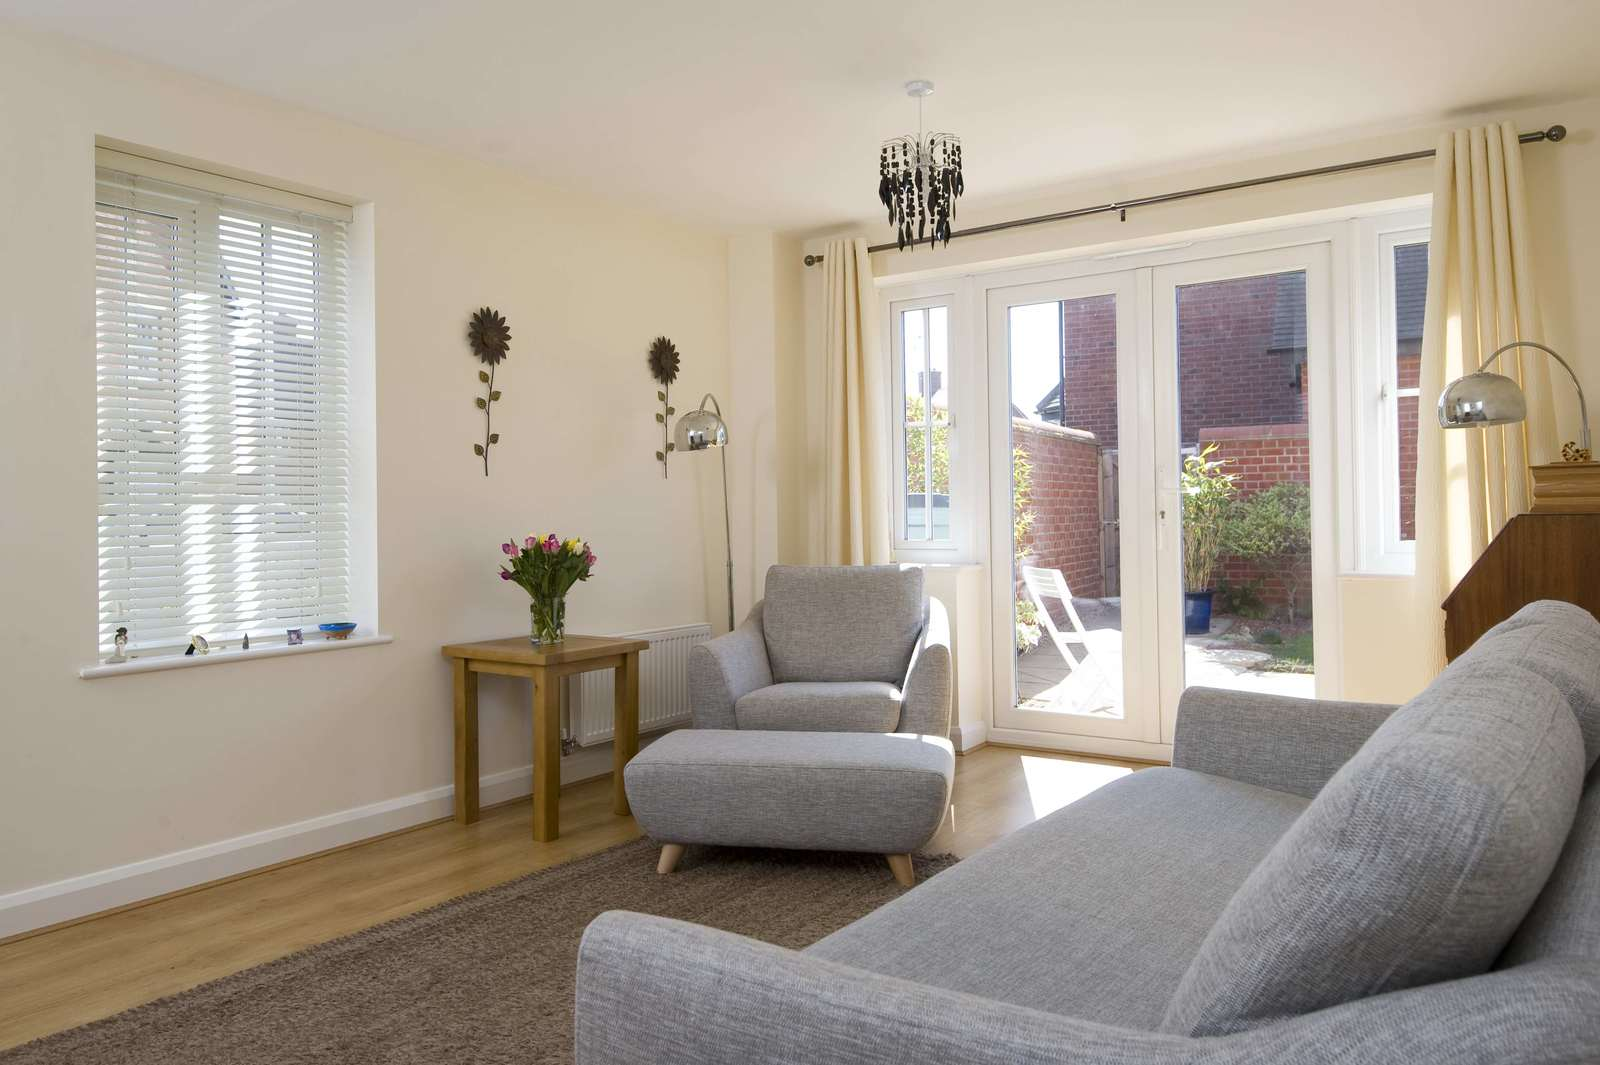 3 bed house for sale in Woodpecker Close, Great Barford 1